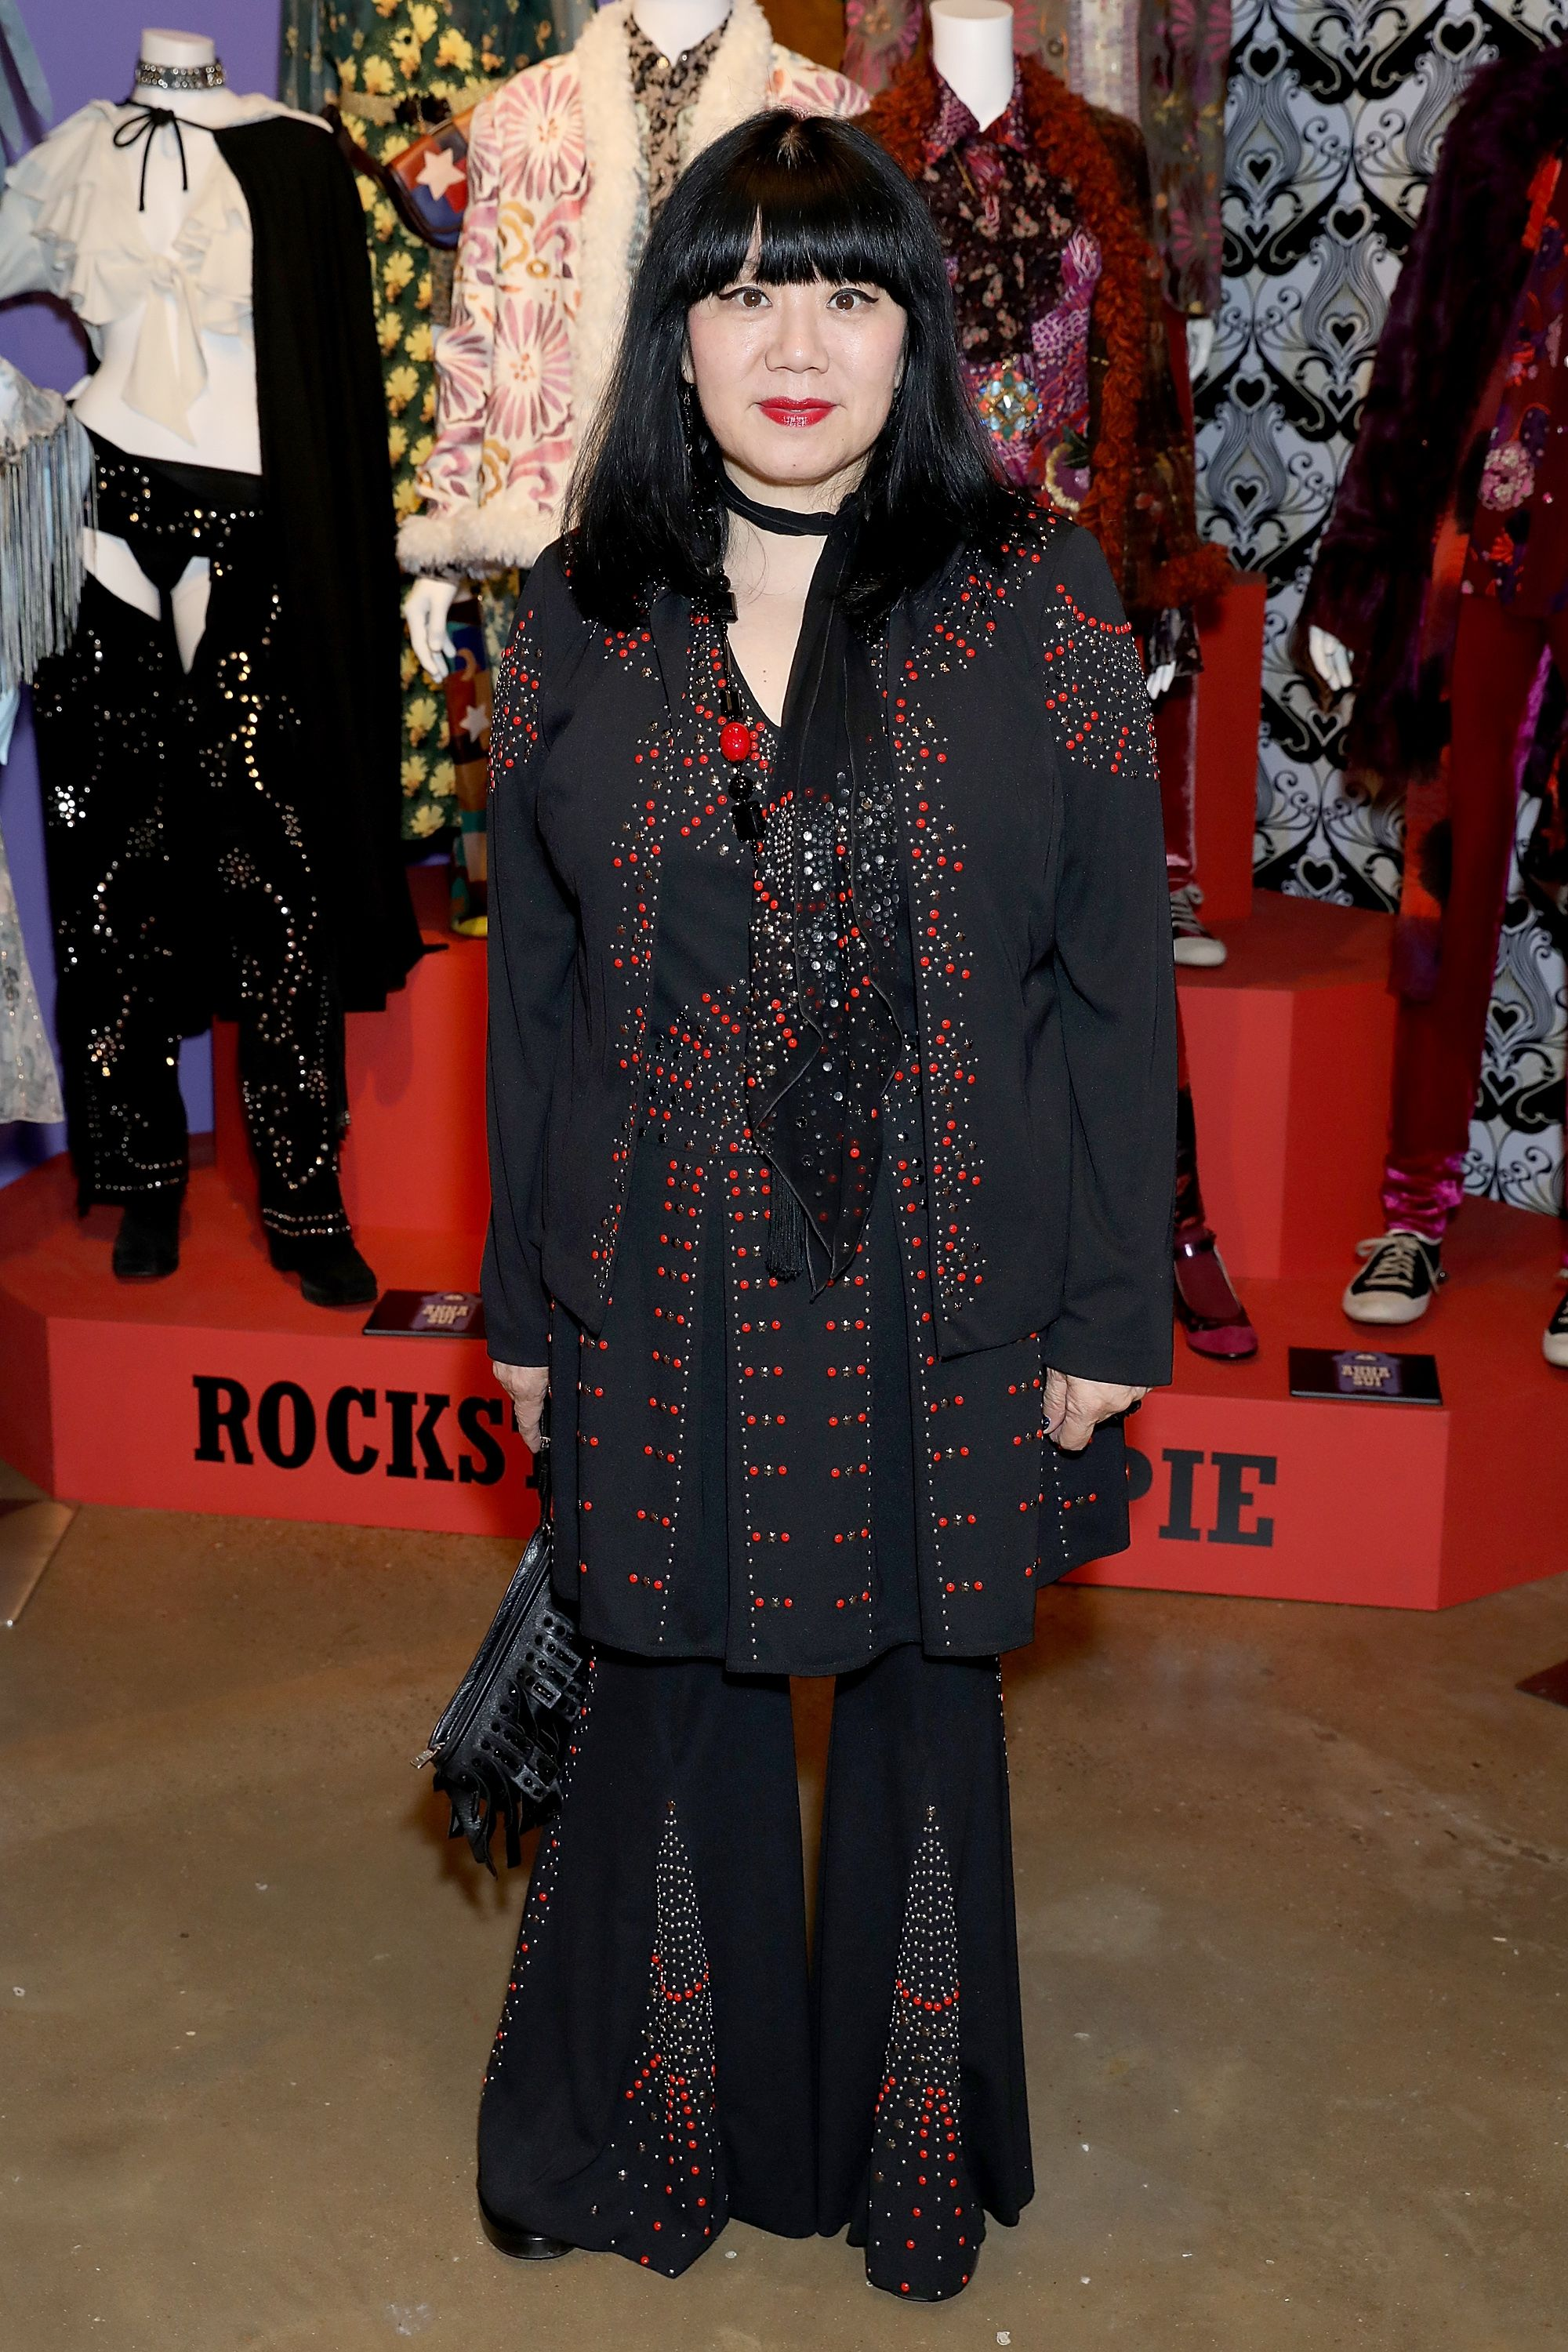 """<p>At the World of Anna Sui Exhibition: Private View at the Fashion and Textile Museum on May 25, 2017 in London<span class=""""redactor-invisible-space"""" data-verified=""""redactor"""" data-redactor-tag=""""span"""" data-redactor-class=""""redactor-invisible-space""""></span>.&nbsp&#x3B;</p>"""